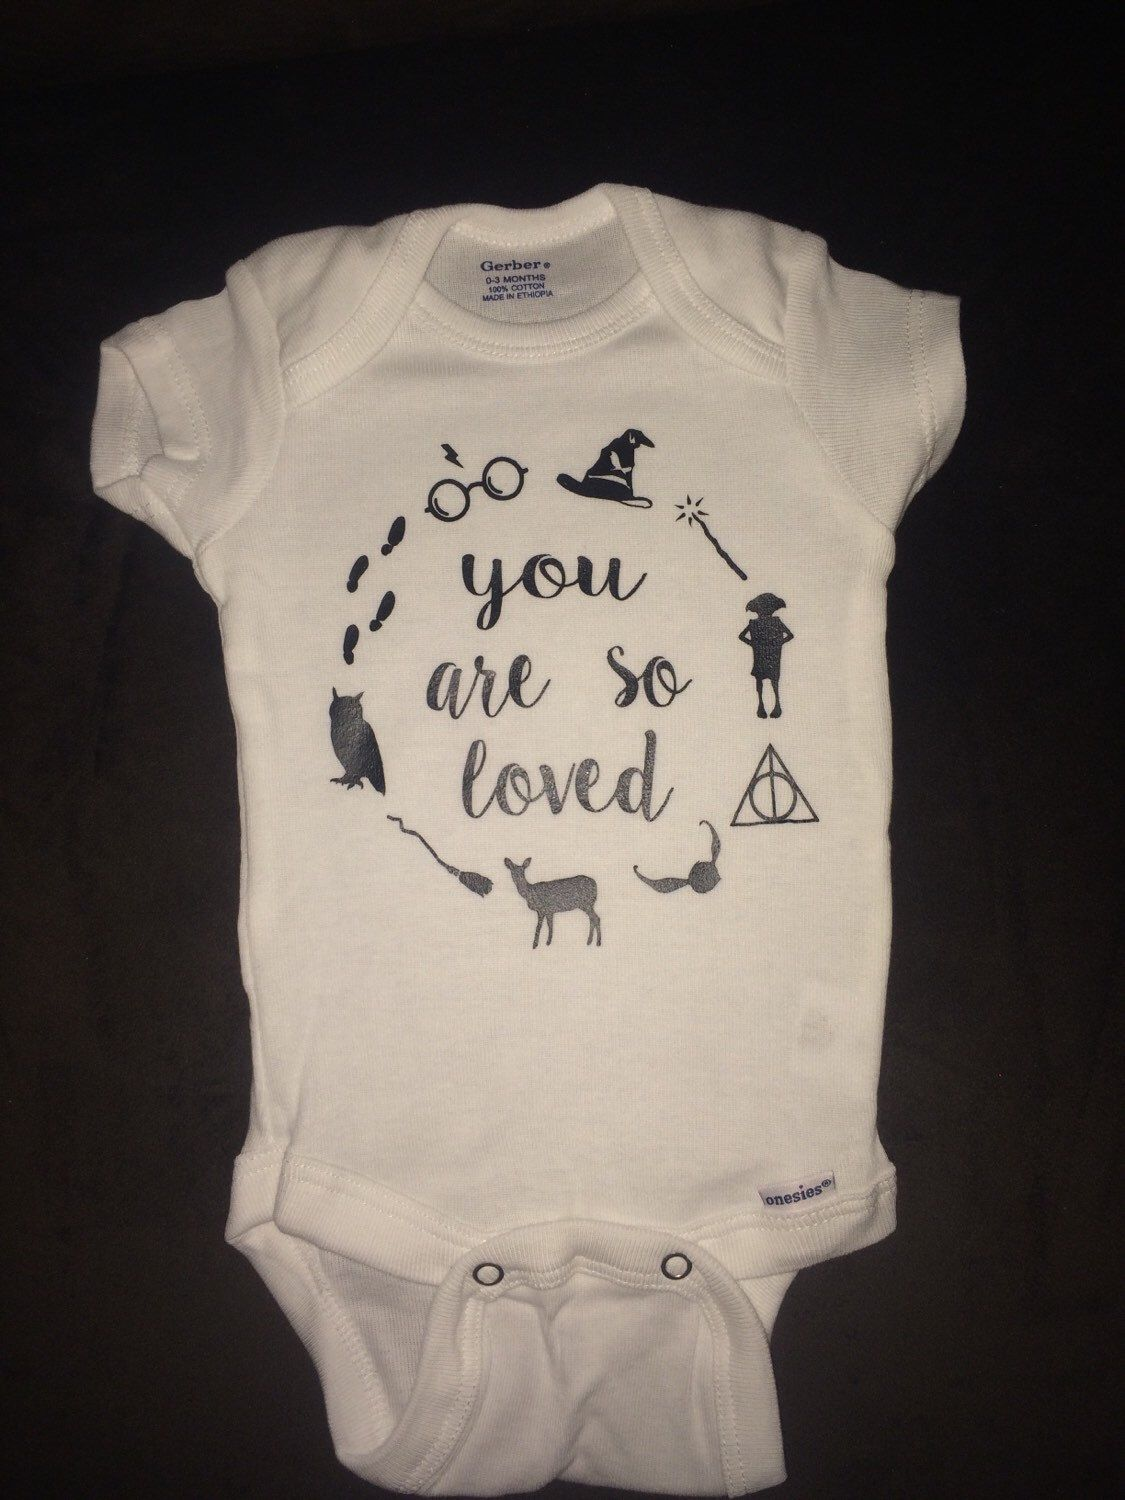 98e8f340d Harry Potter inspired baby onesie! Great for your soon to be potterhead